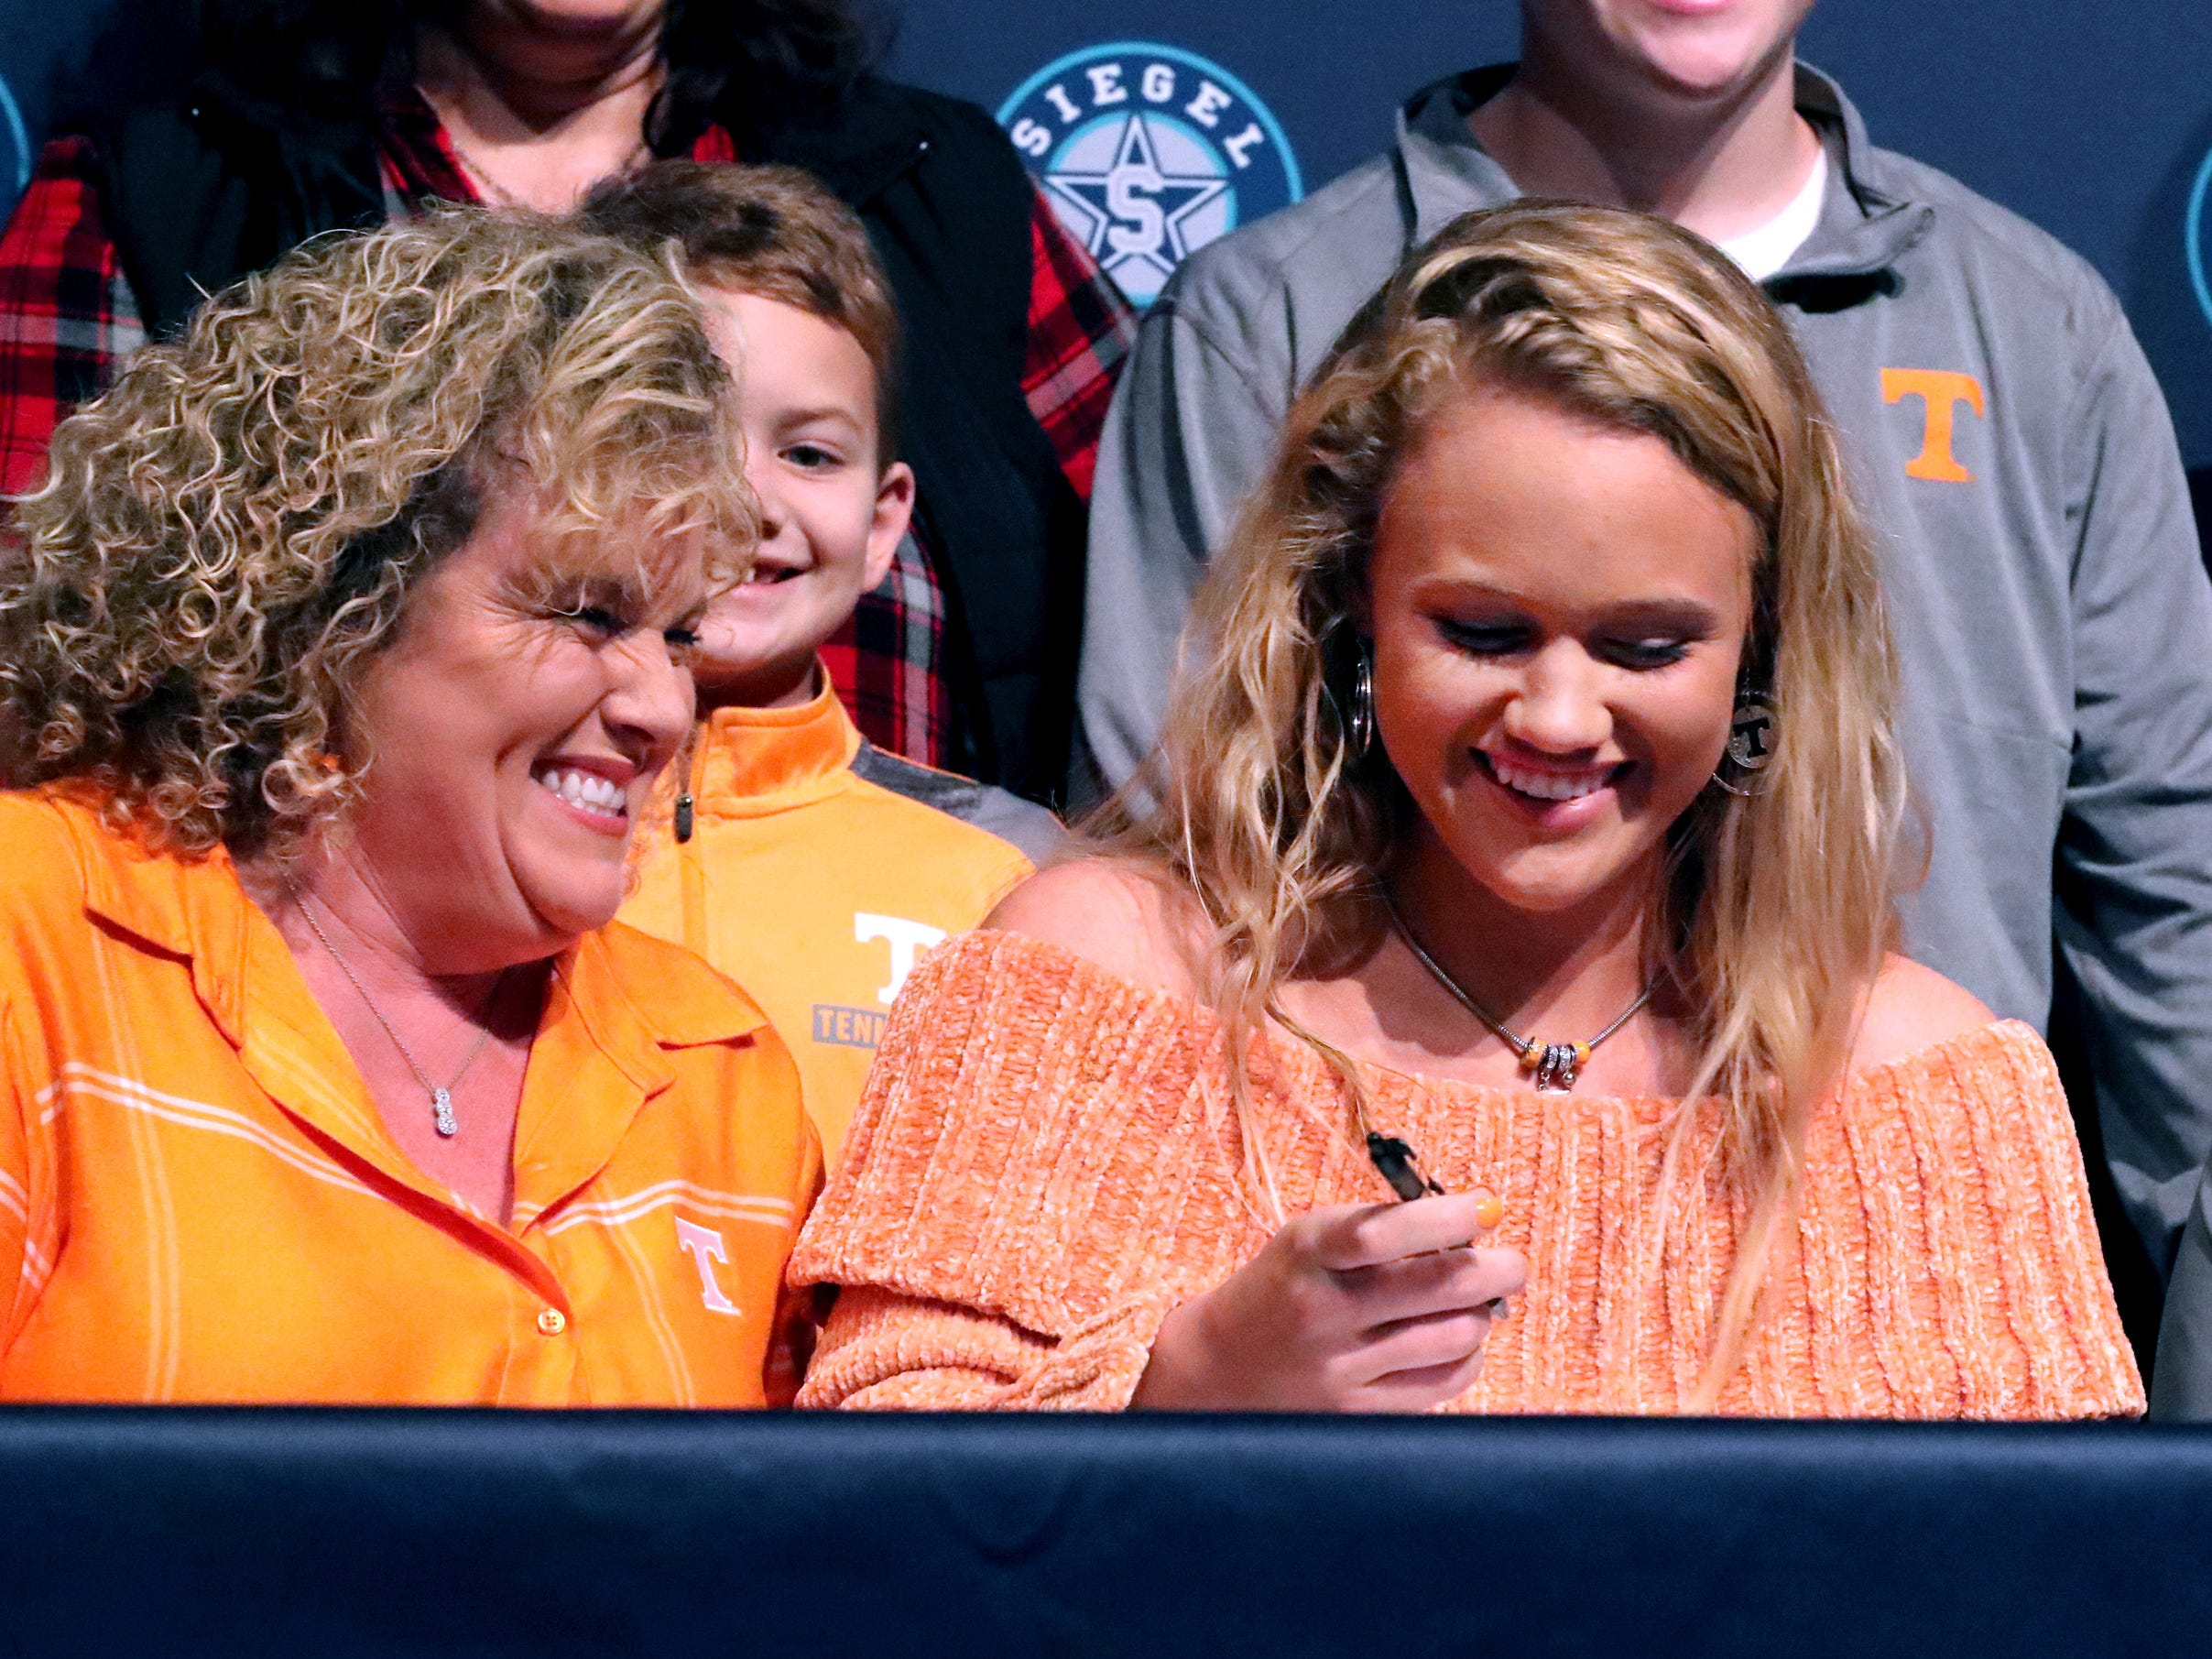 Siegel softball player, Caitlyn McCrary signed a national letter of intent to play college softball at the University of Tennessee, on Wednesday, Nov. 14, 2018.